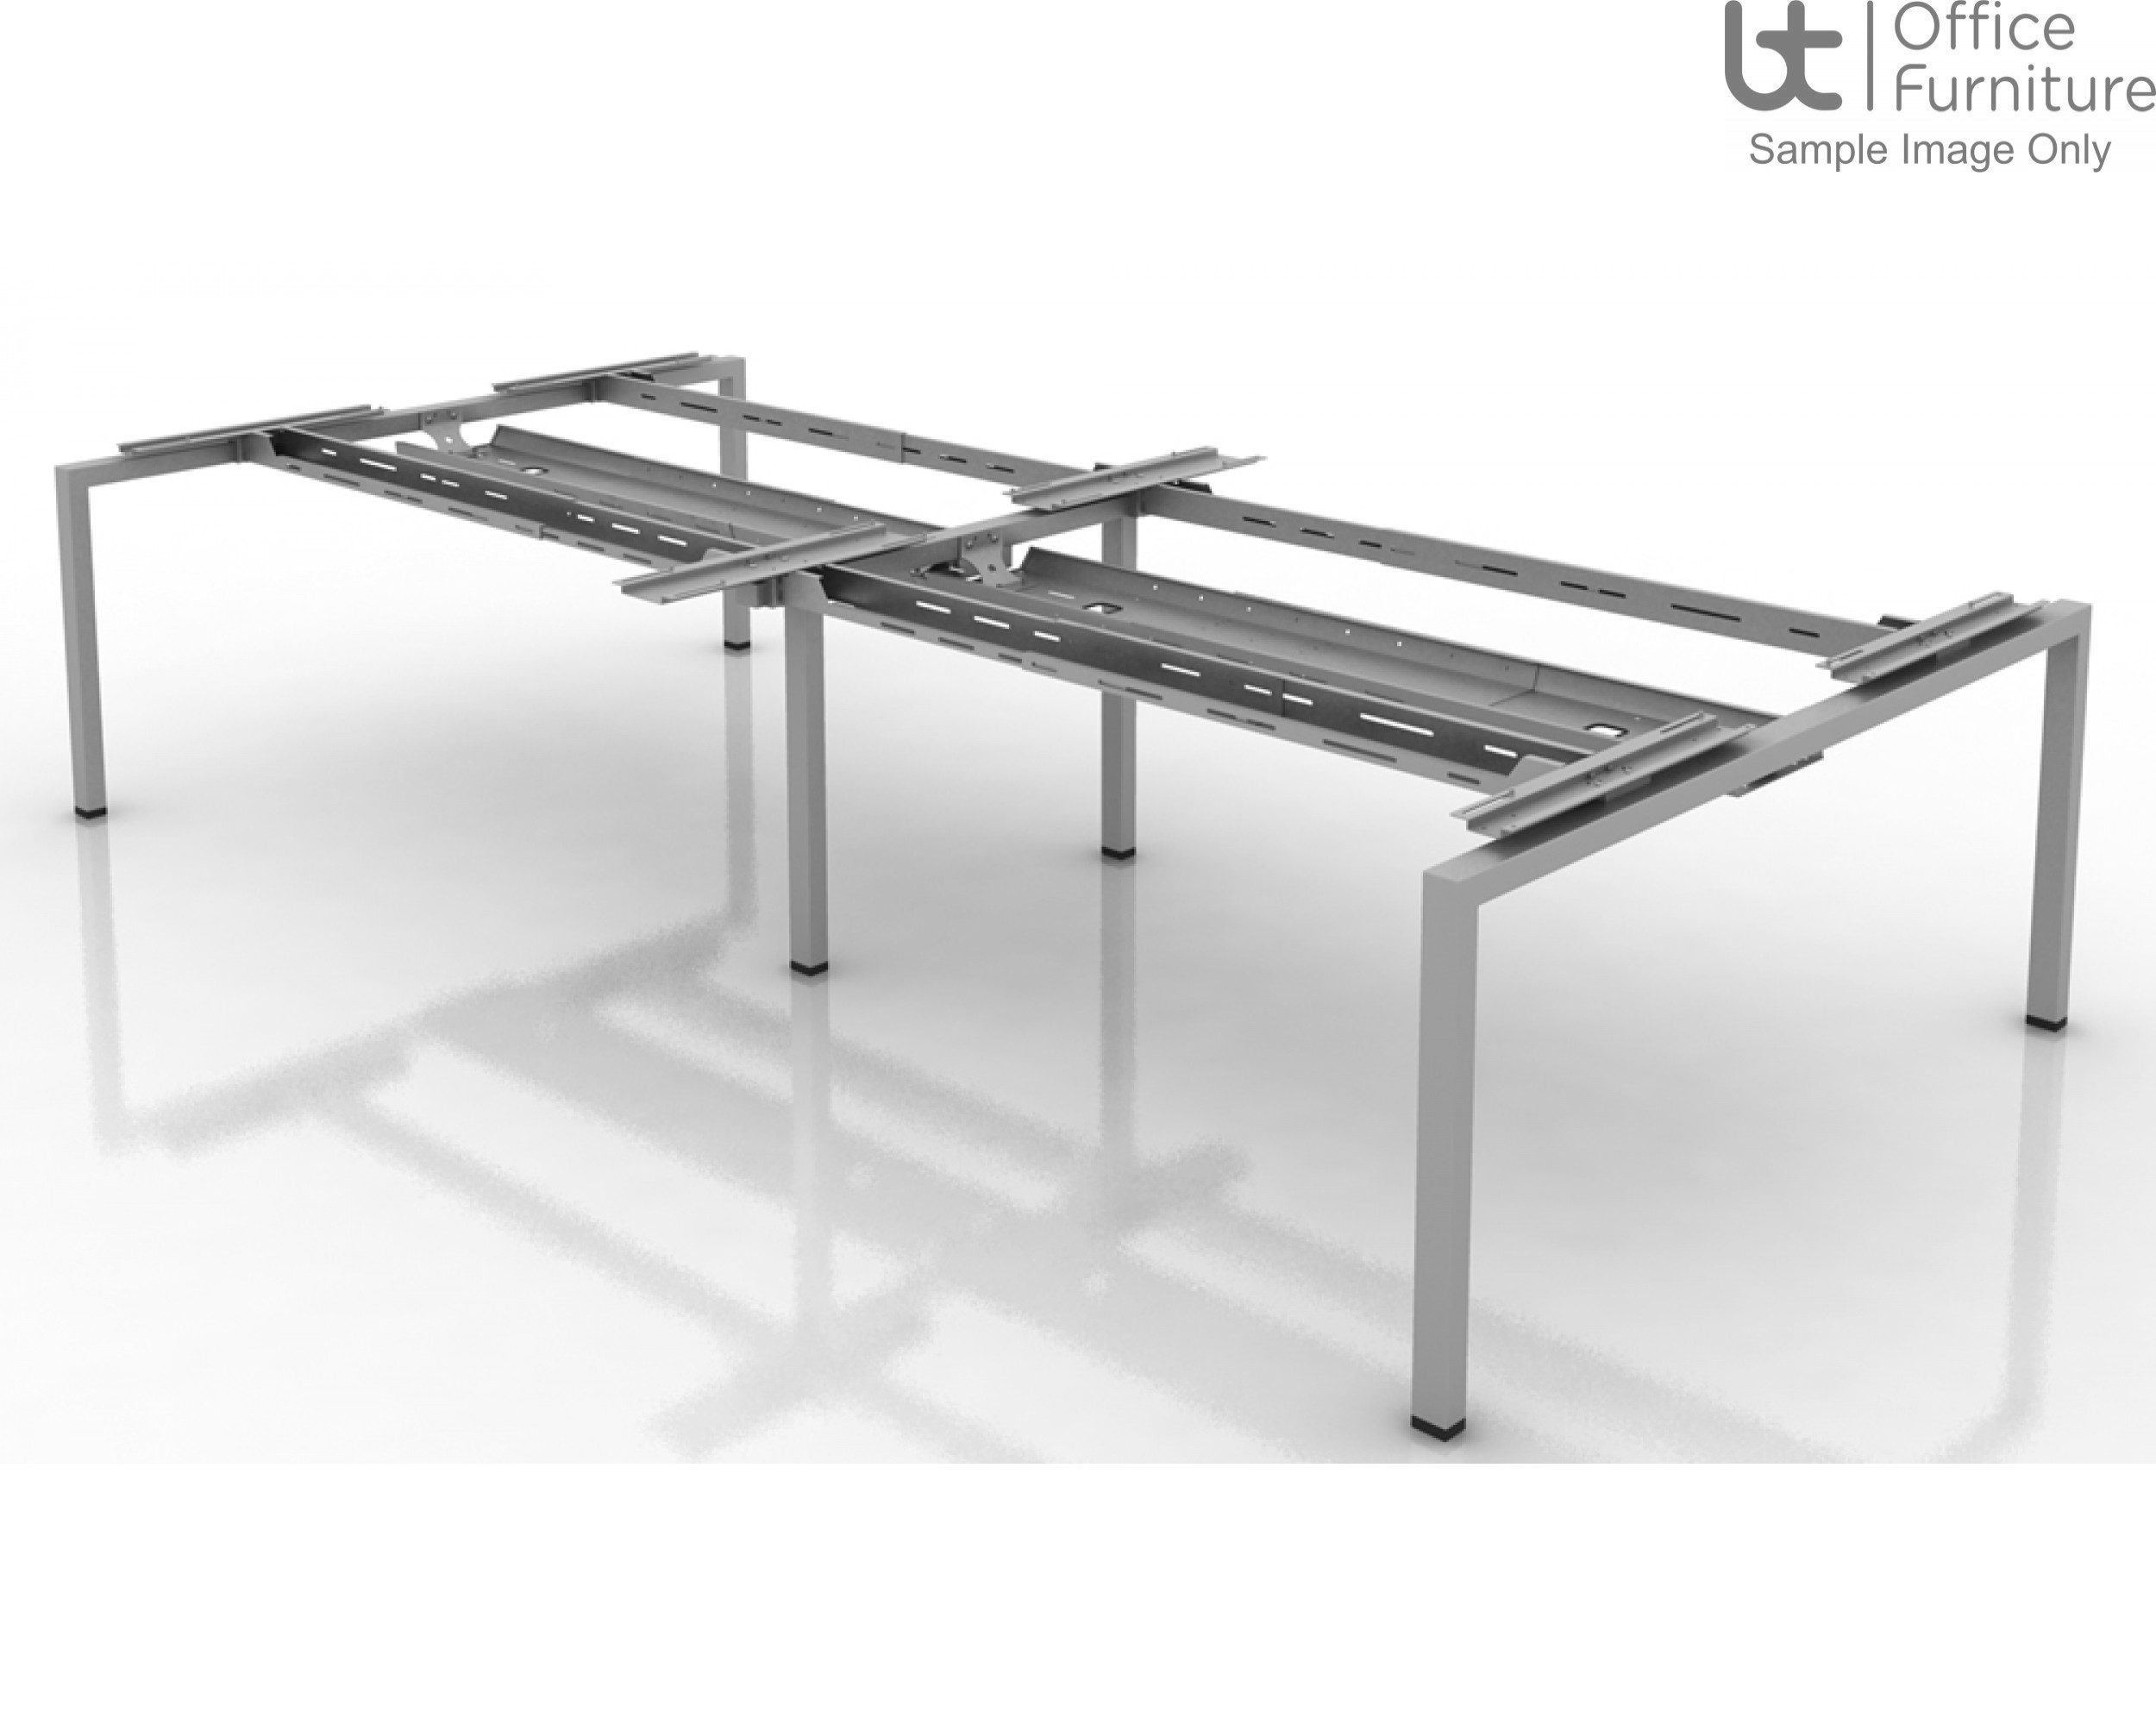 Soho2 Back To Back Add-On Starter Module Desk 1650mm Deep Inc Telescopic Cable Tray